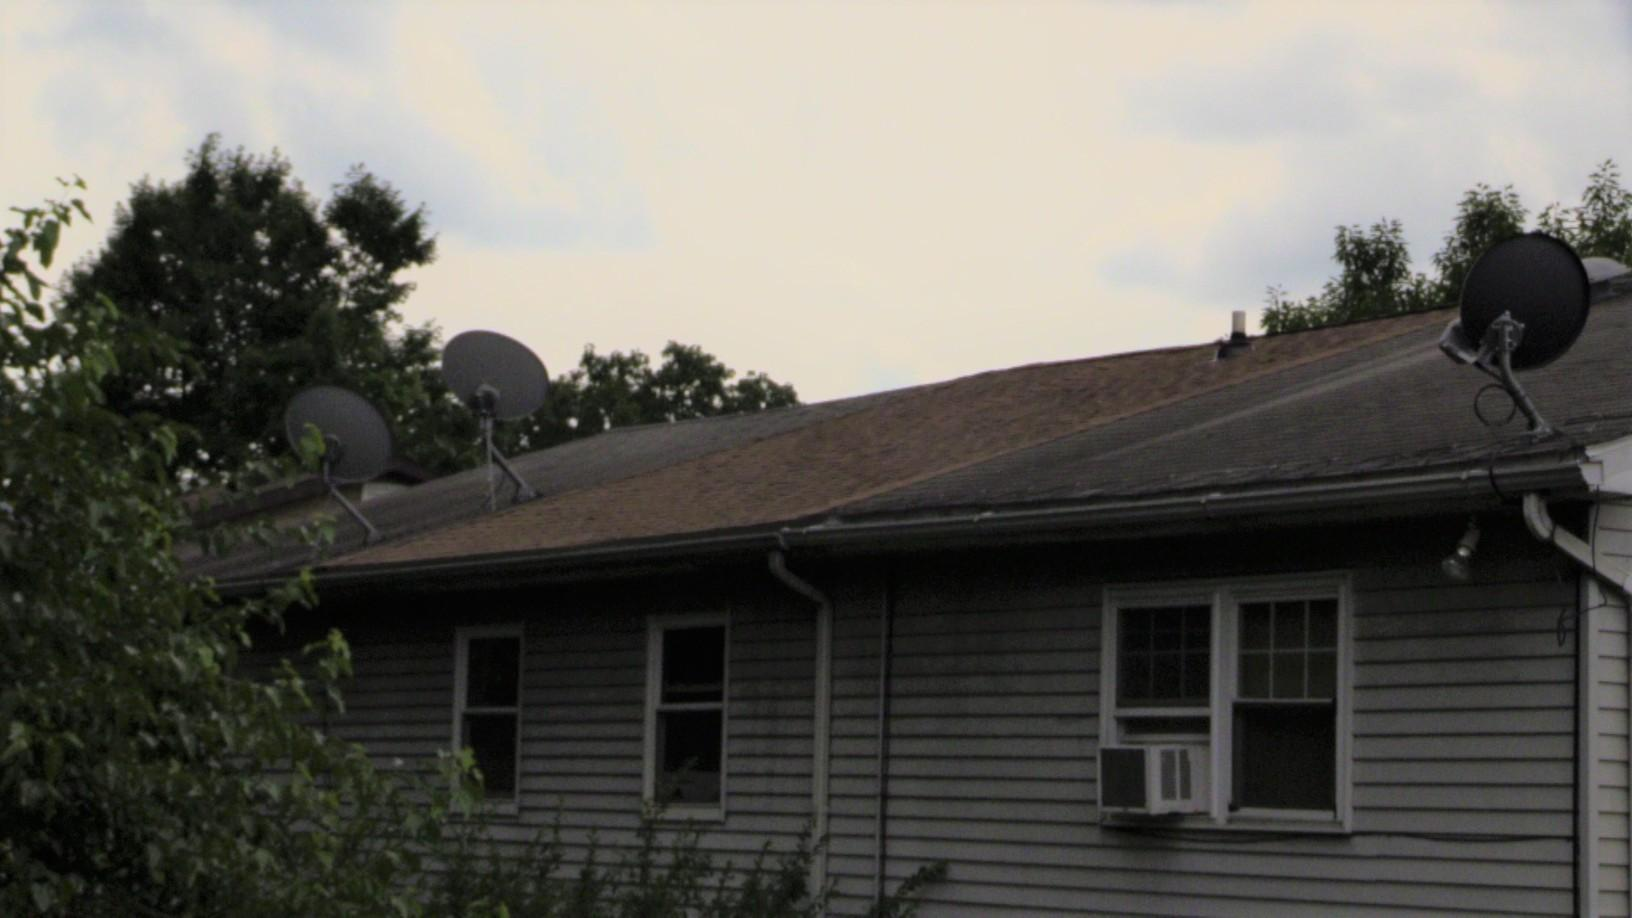 Dale S New Roof At His Allentown House A Nice New Roof